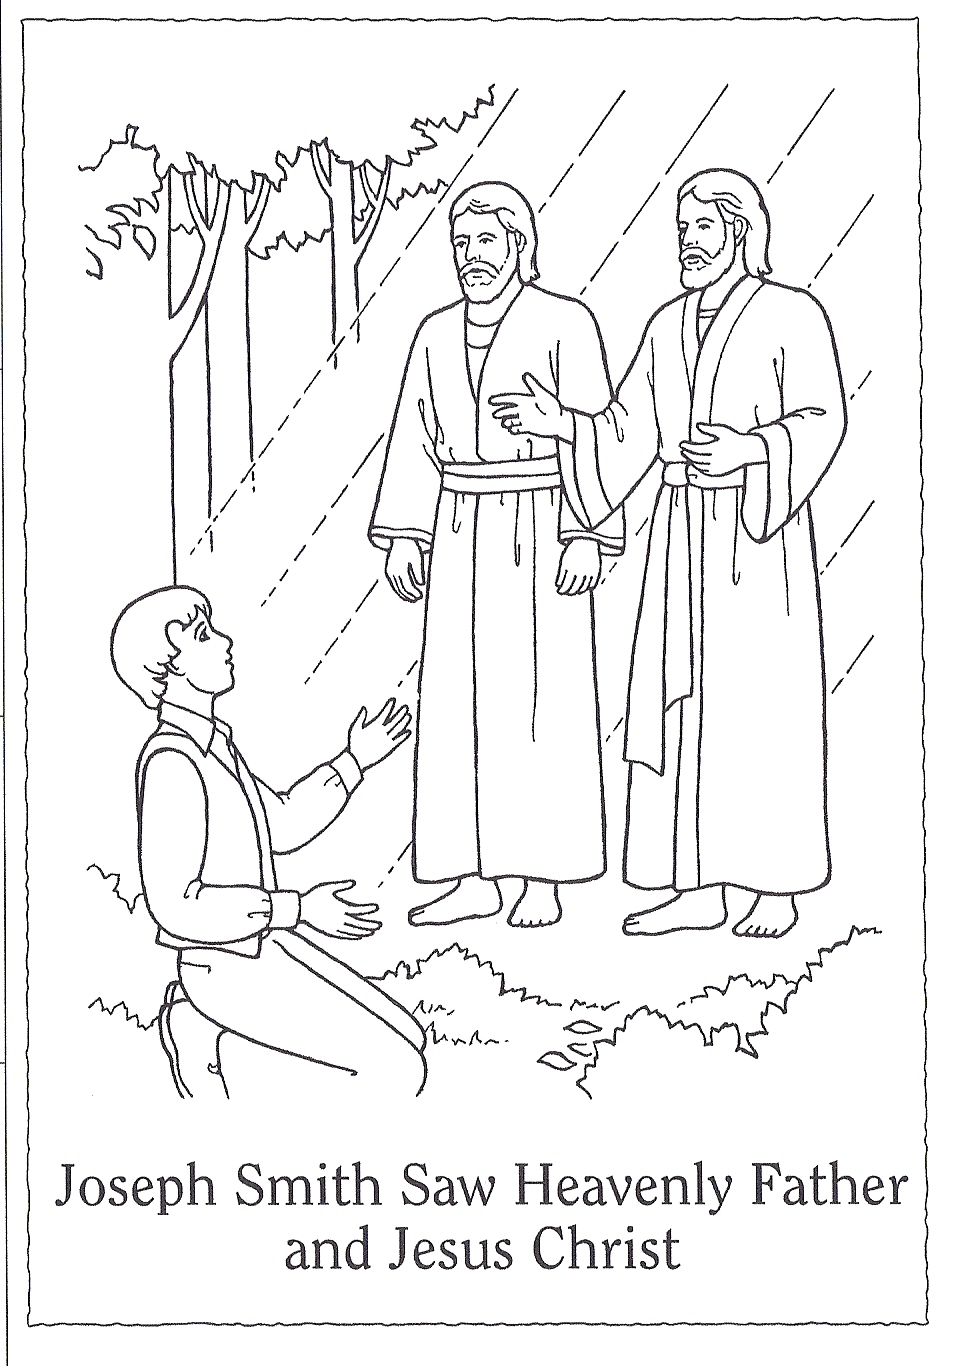 Joseph Smith First Vision Coloring Page - Free Coloring Pages